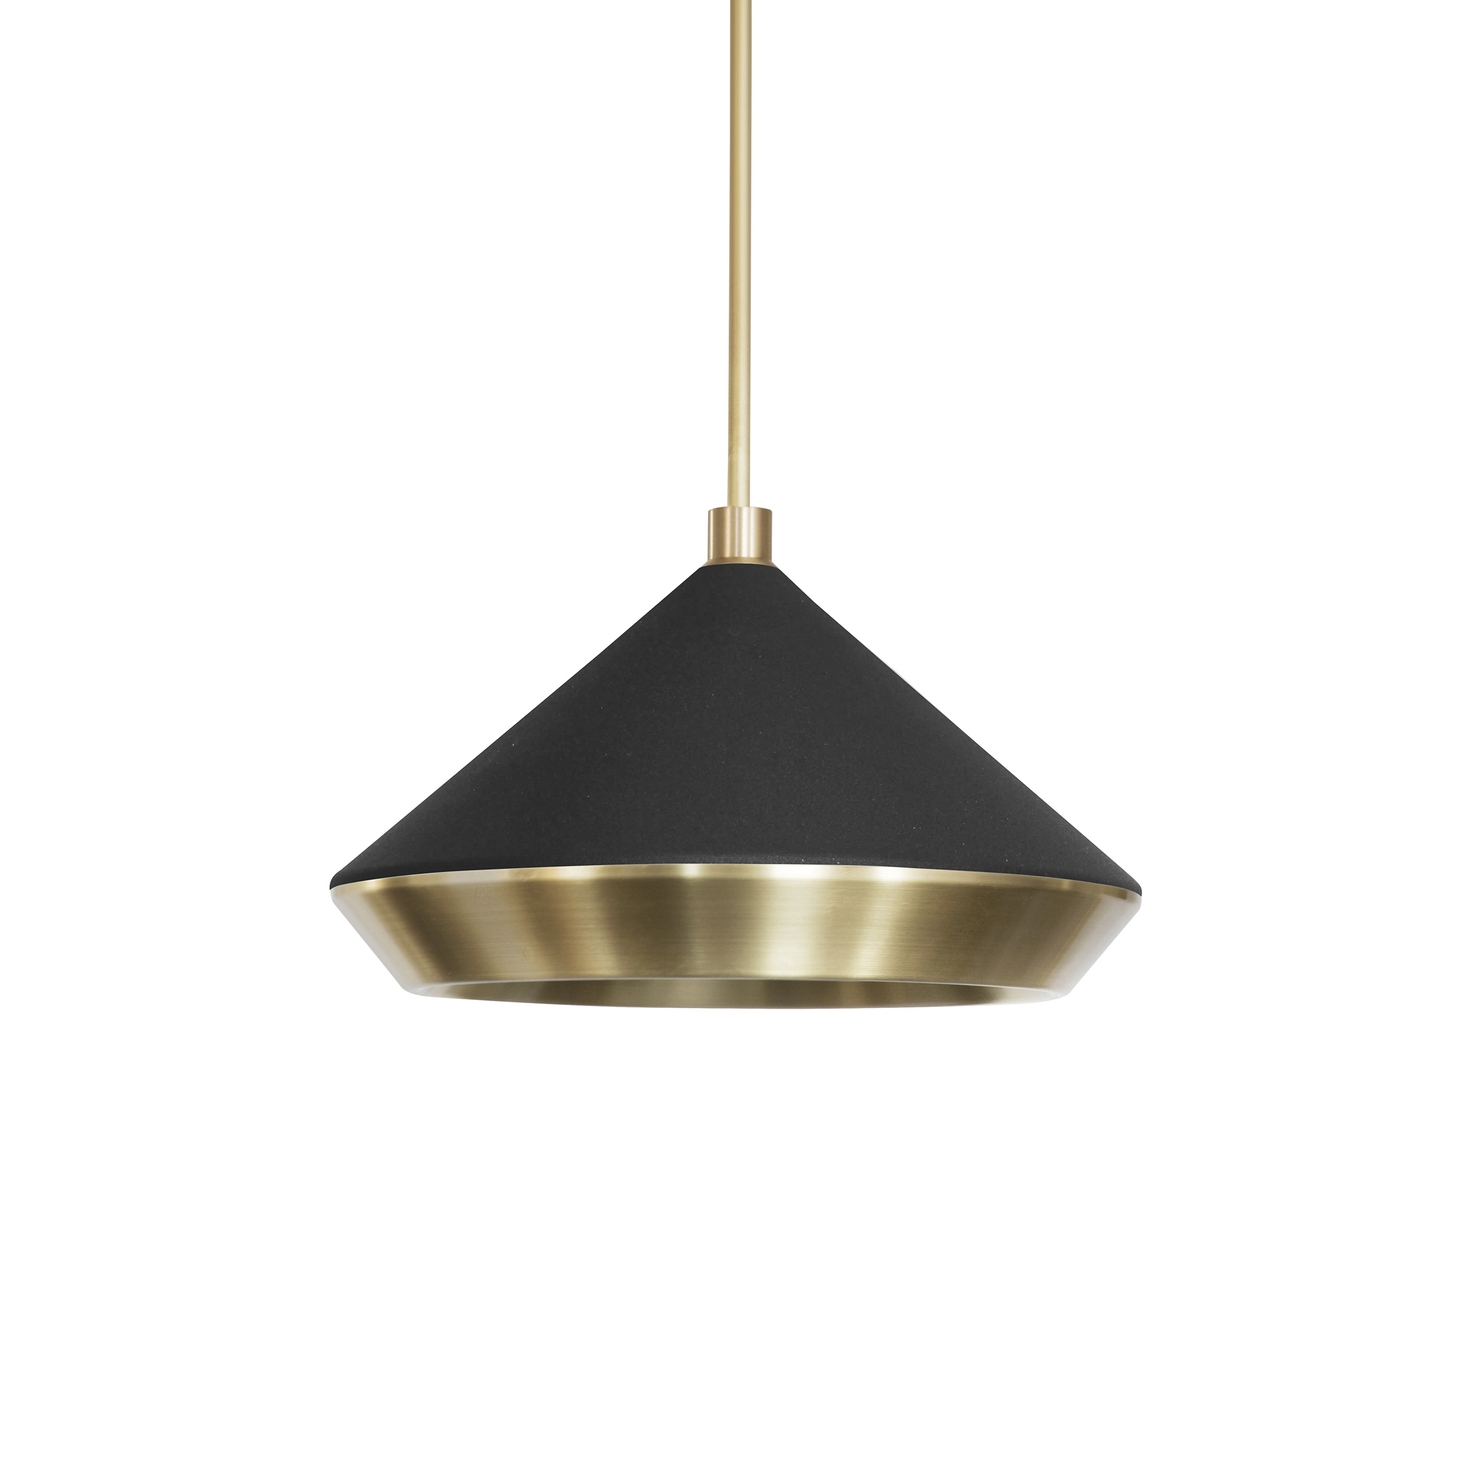 retro lighting zoom light online pendant brass modern